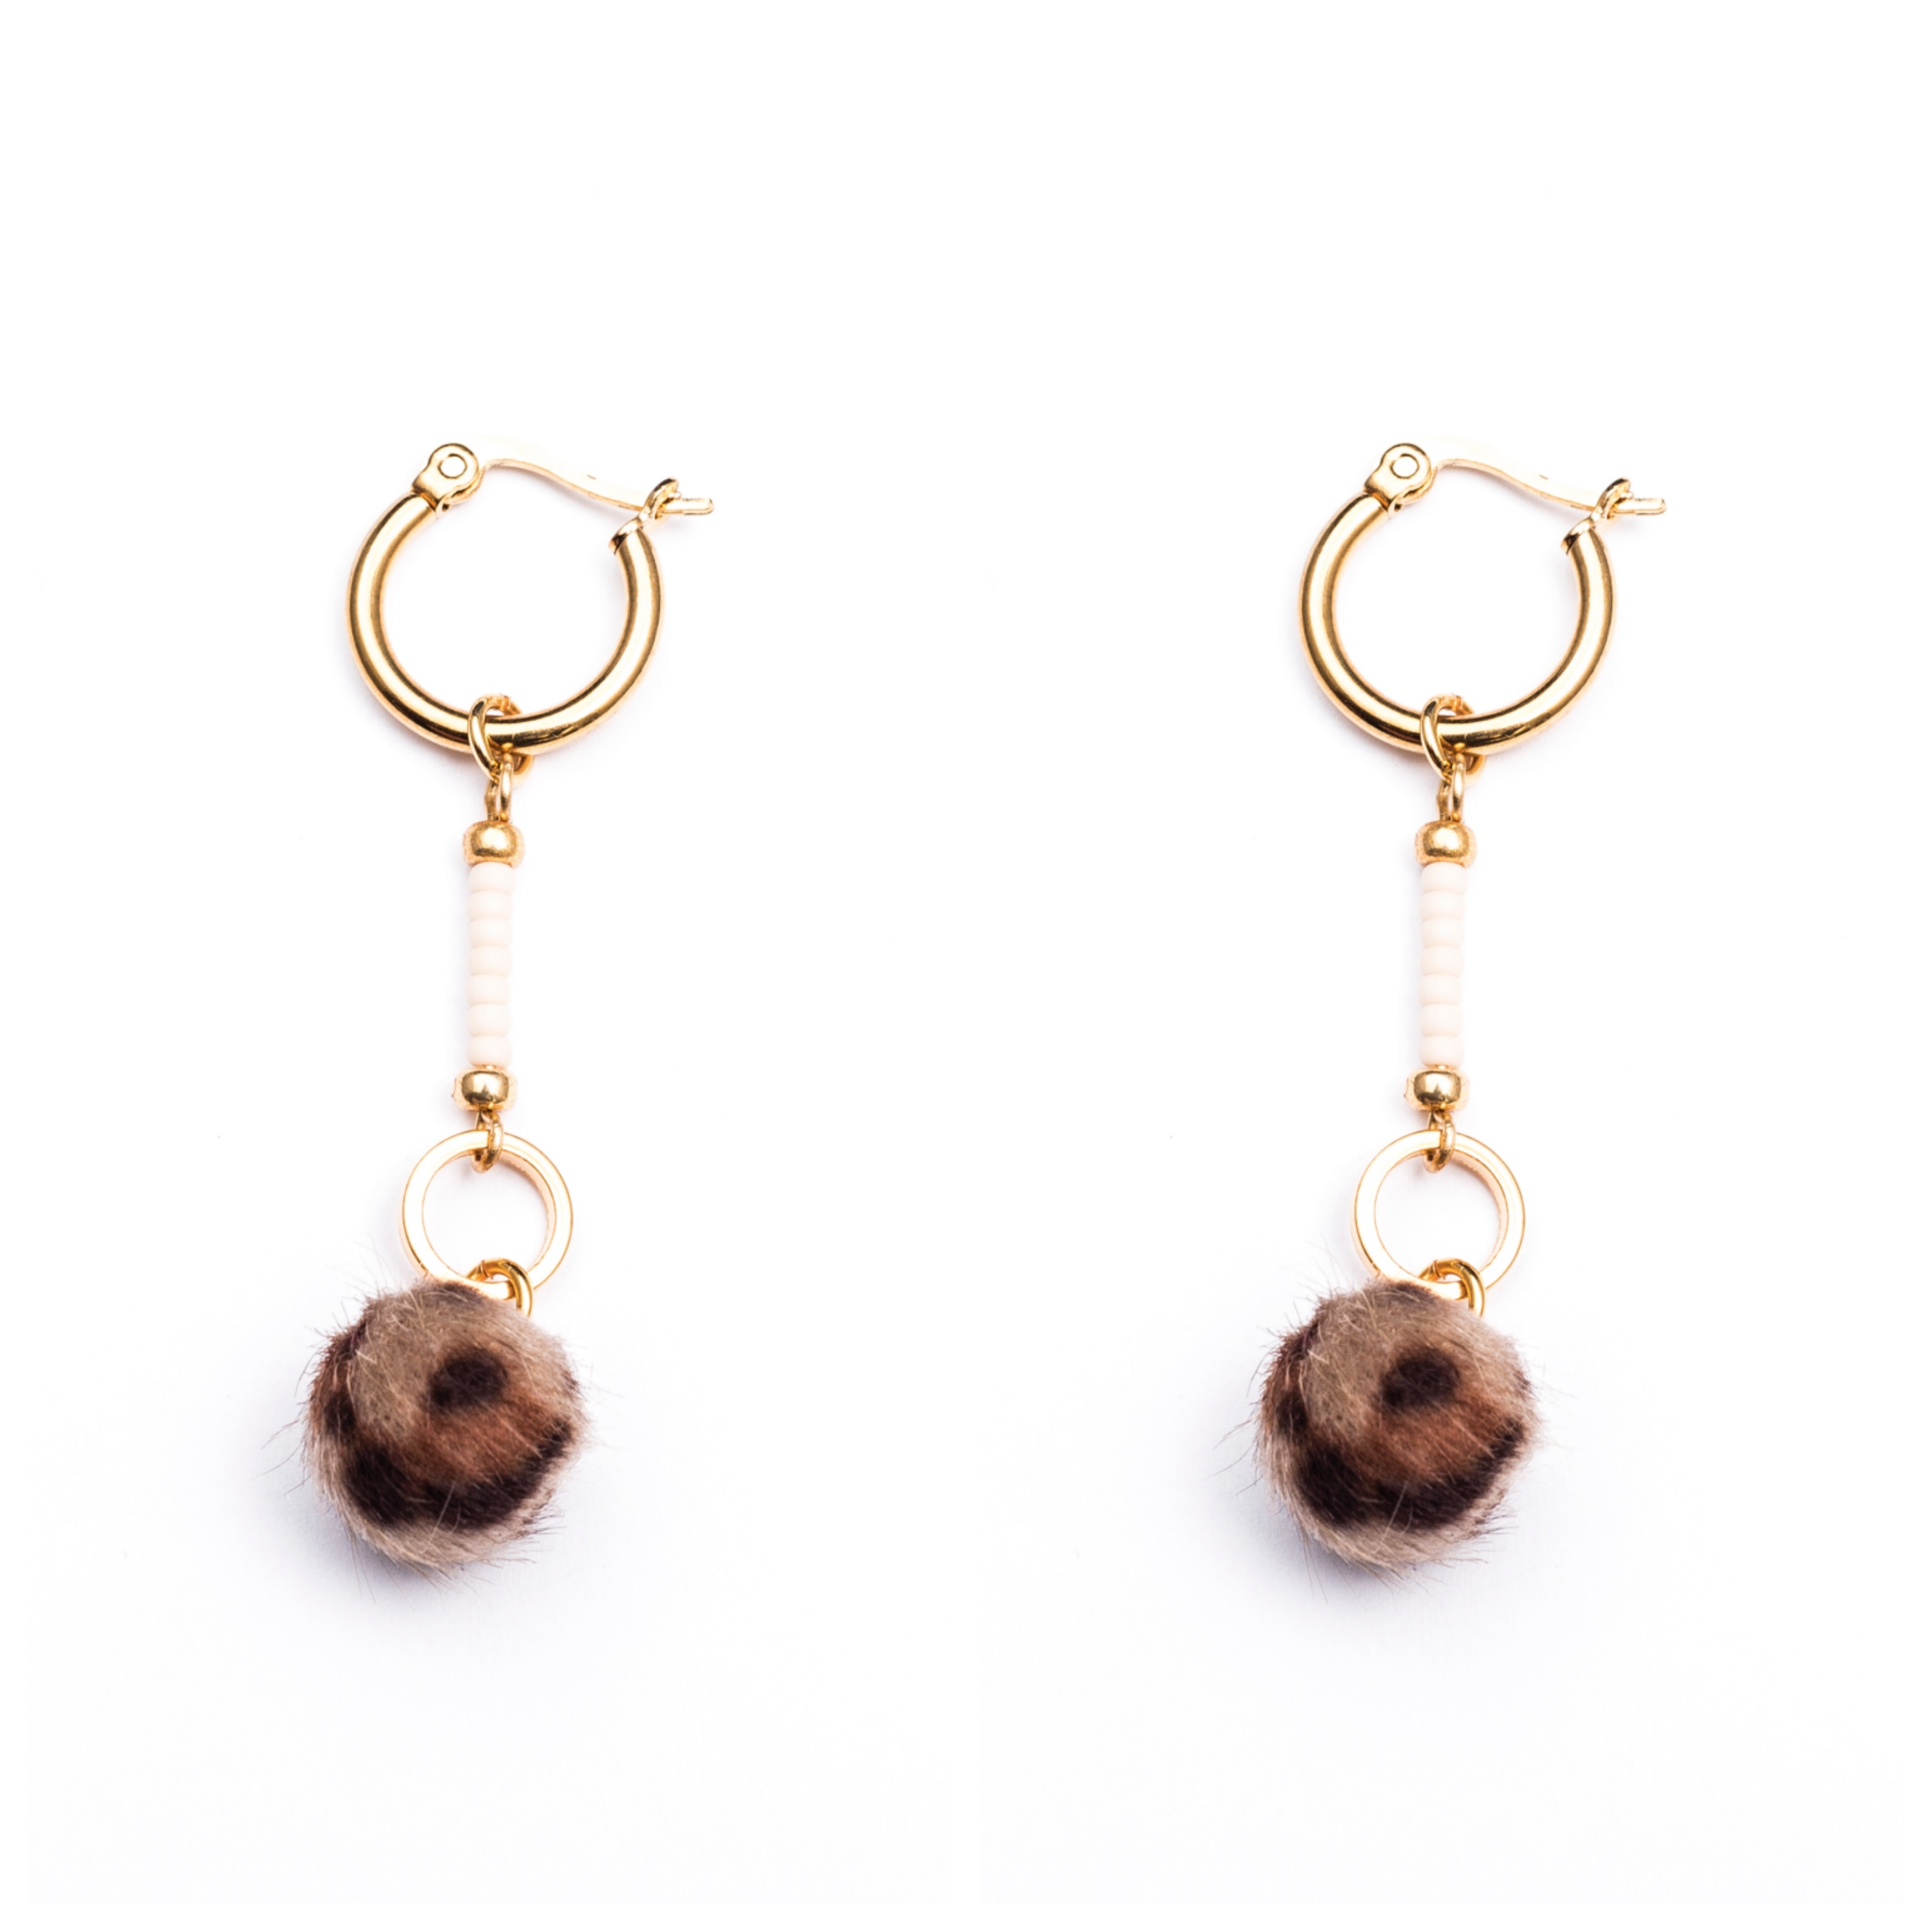 Melz - Earring Petit Isabelle Cream Brown